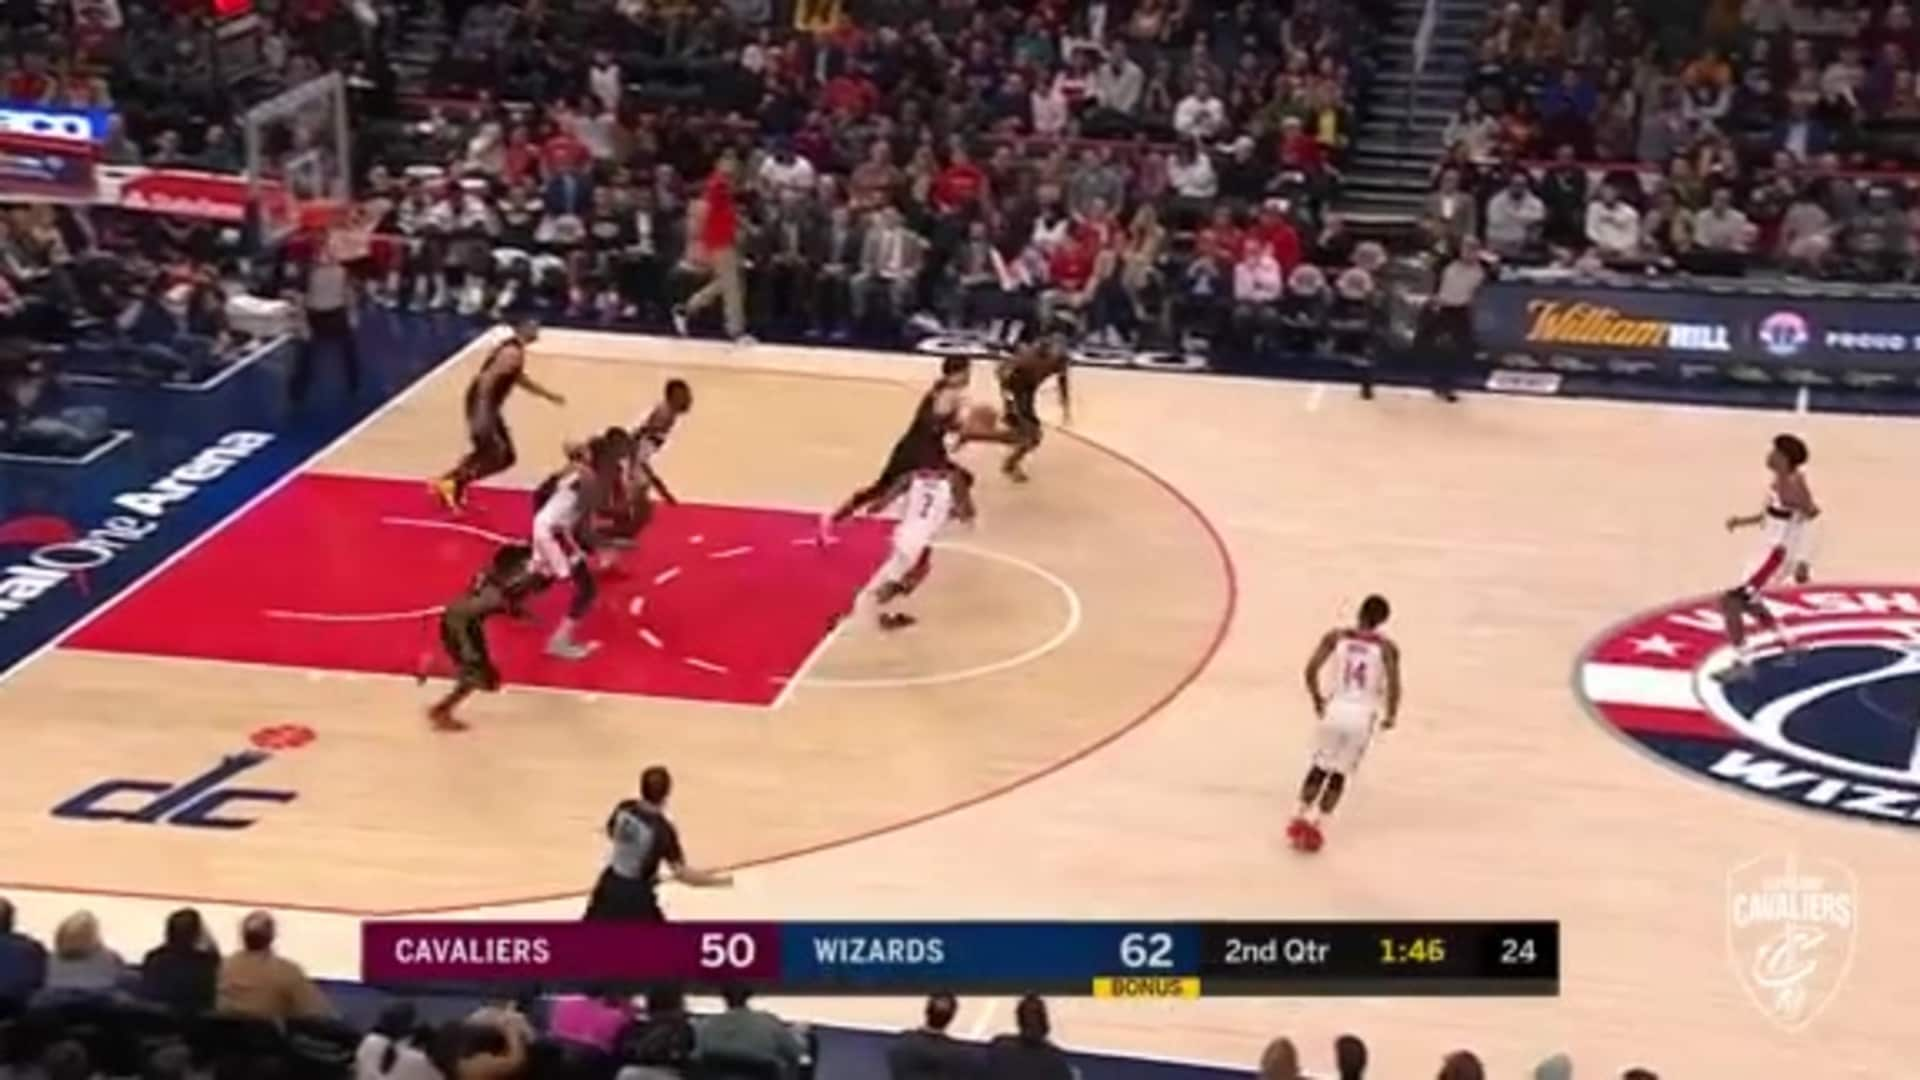 Cedi Scores Coast-to-Coast Lay-Up